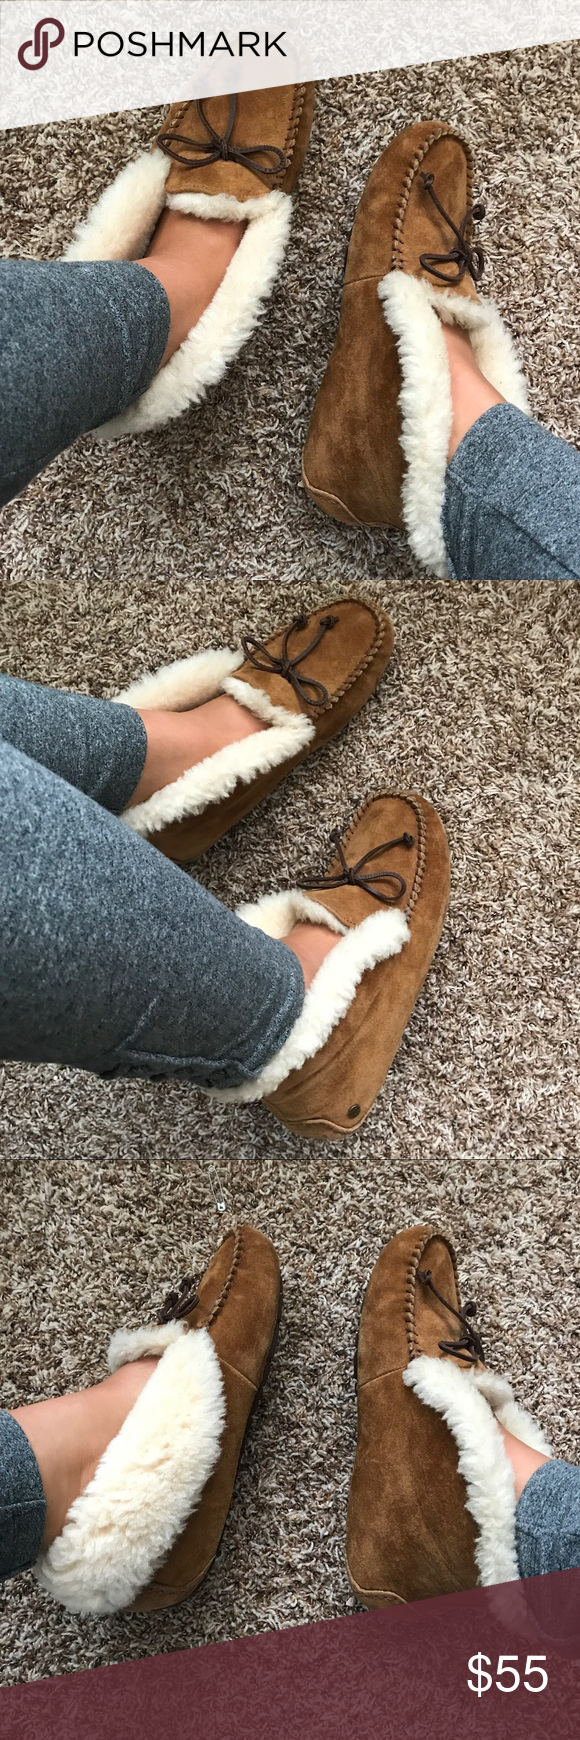 Ugg Moccasins With Foldable Fur Uggs Moccasins Uggs